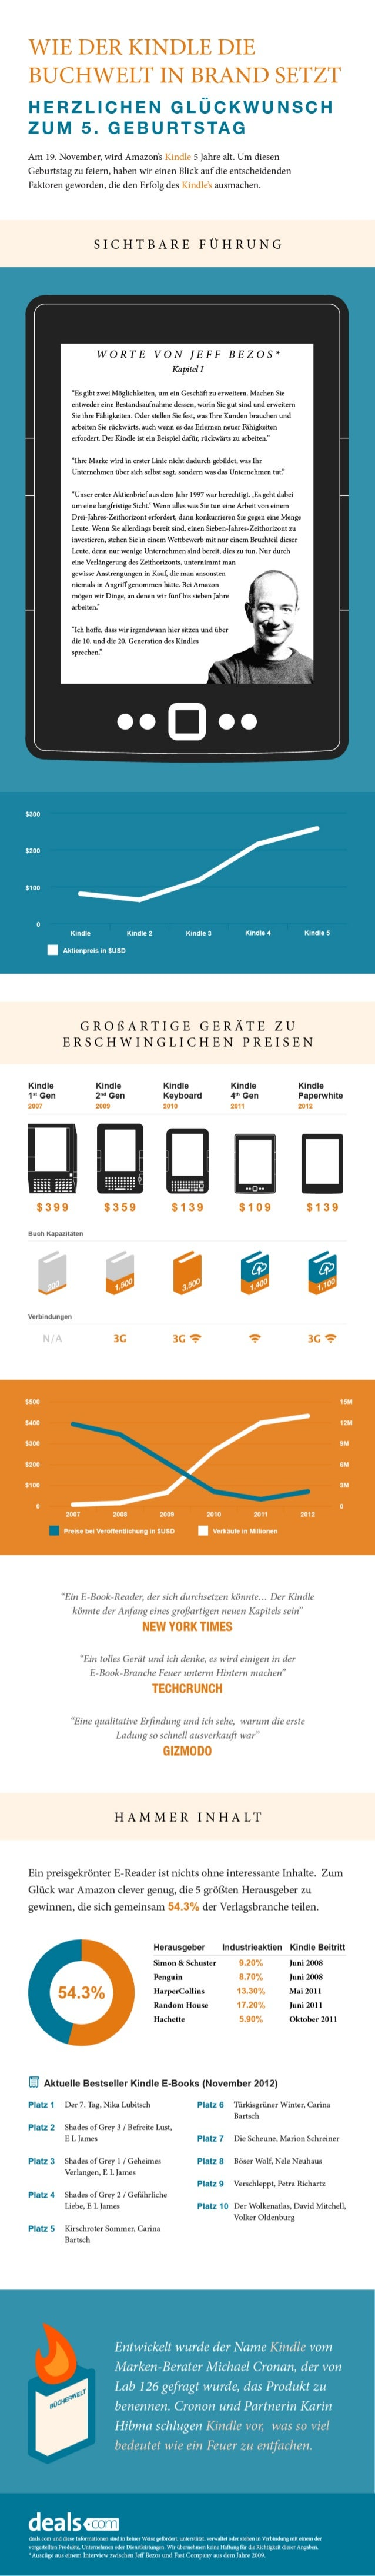 Kindle infografik